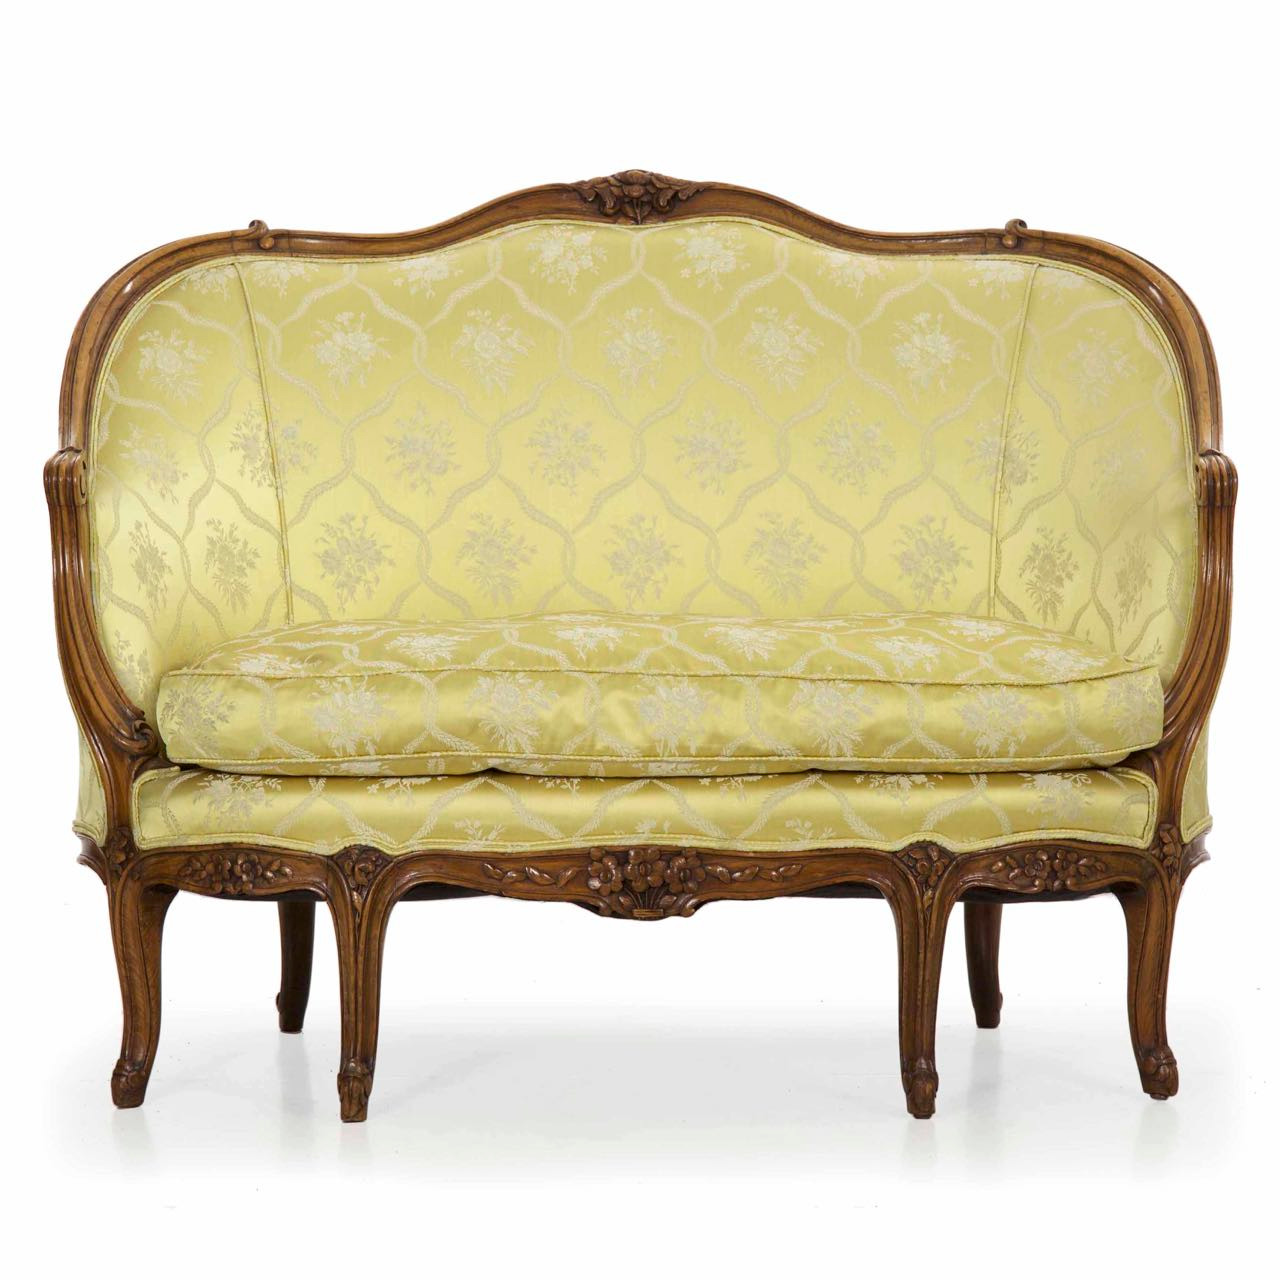 Canape Sofa French Louis Xv Style Canapé Sofa 19th Century